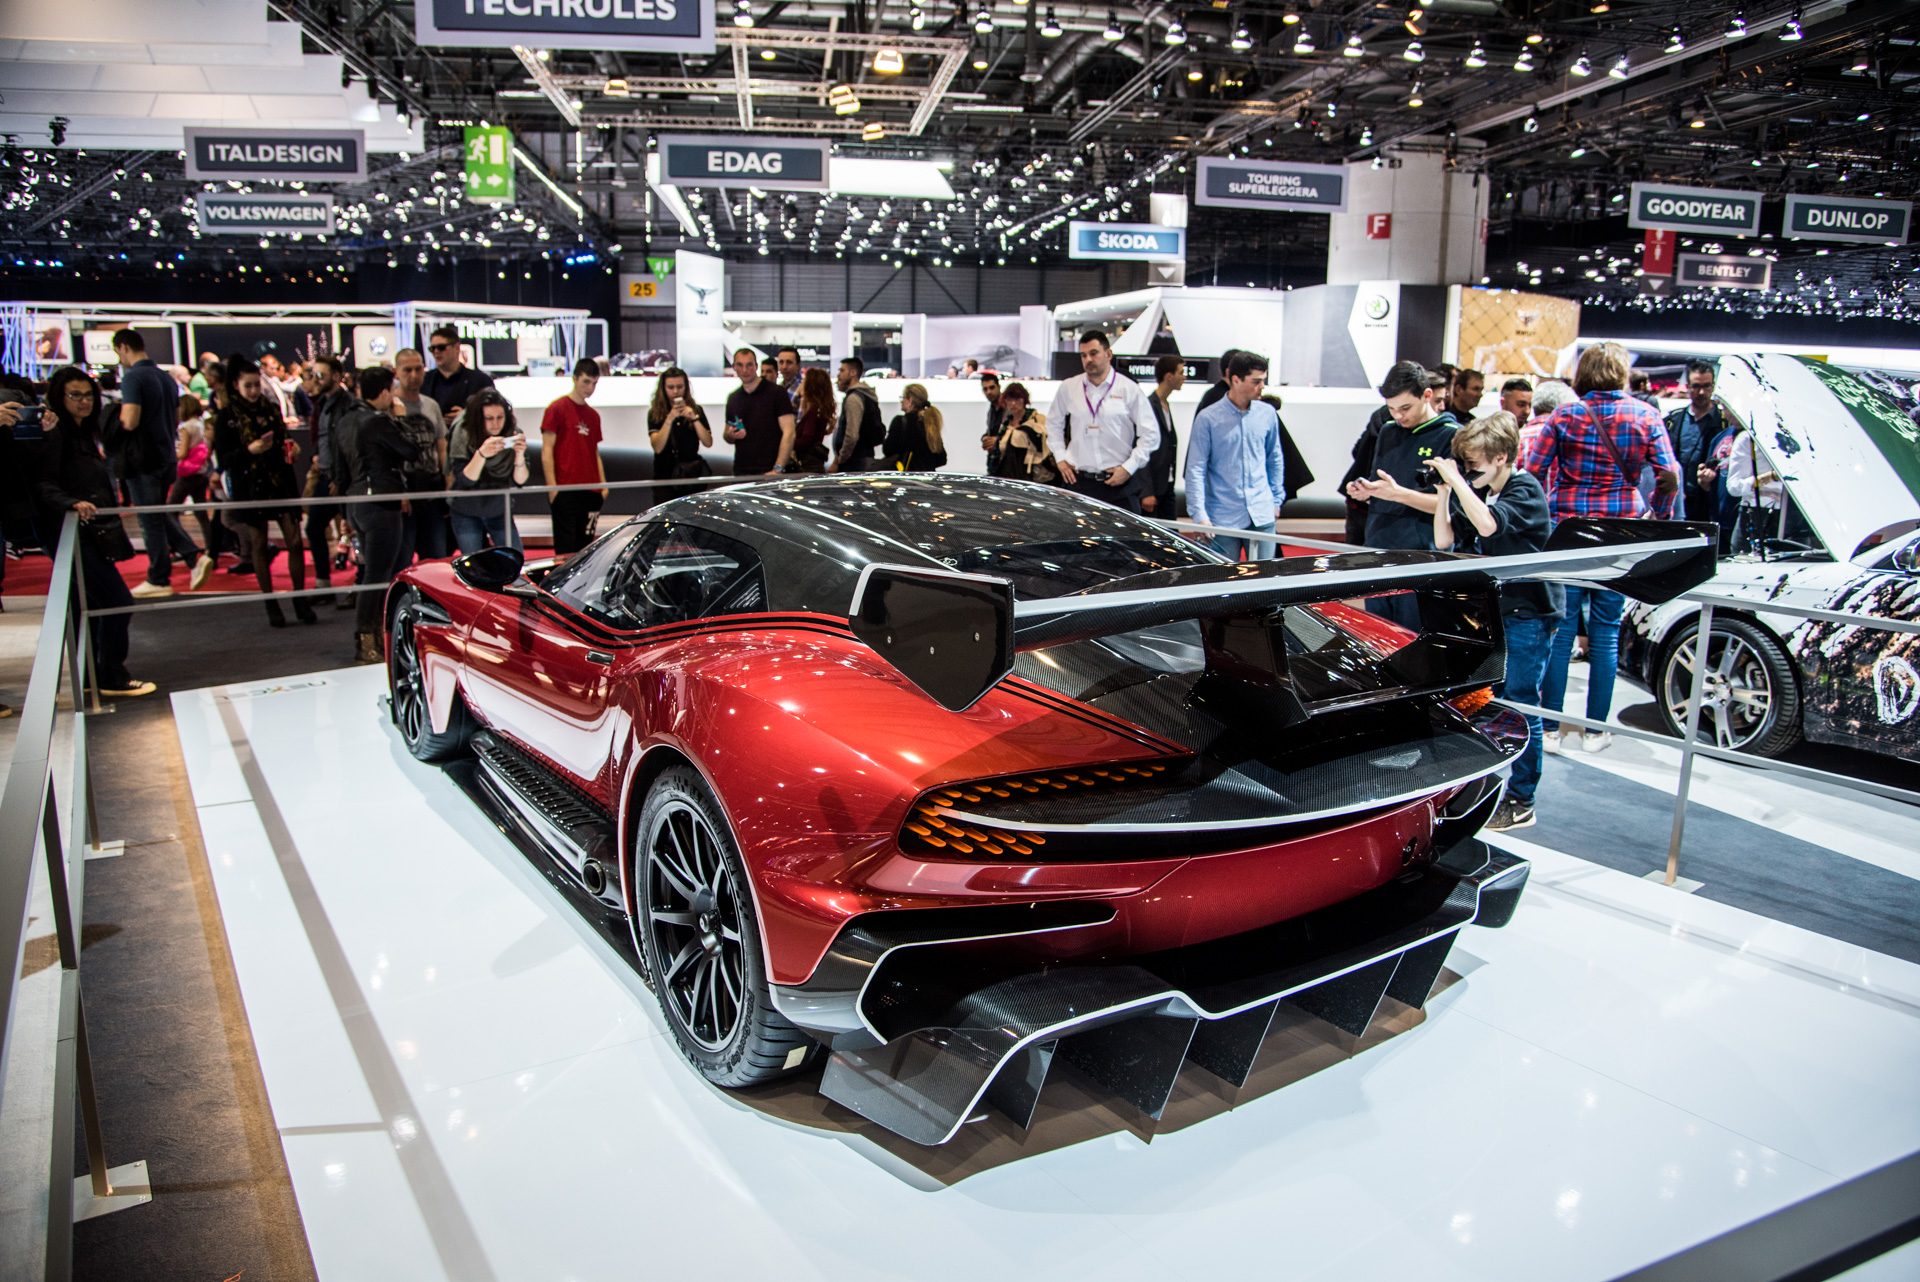 geneva-international-motor-show-igor-sinitsin-105